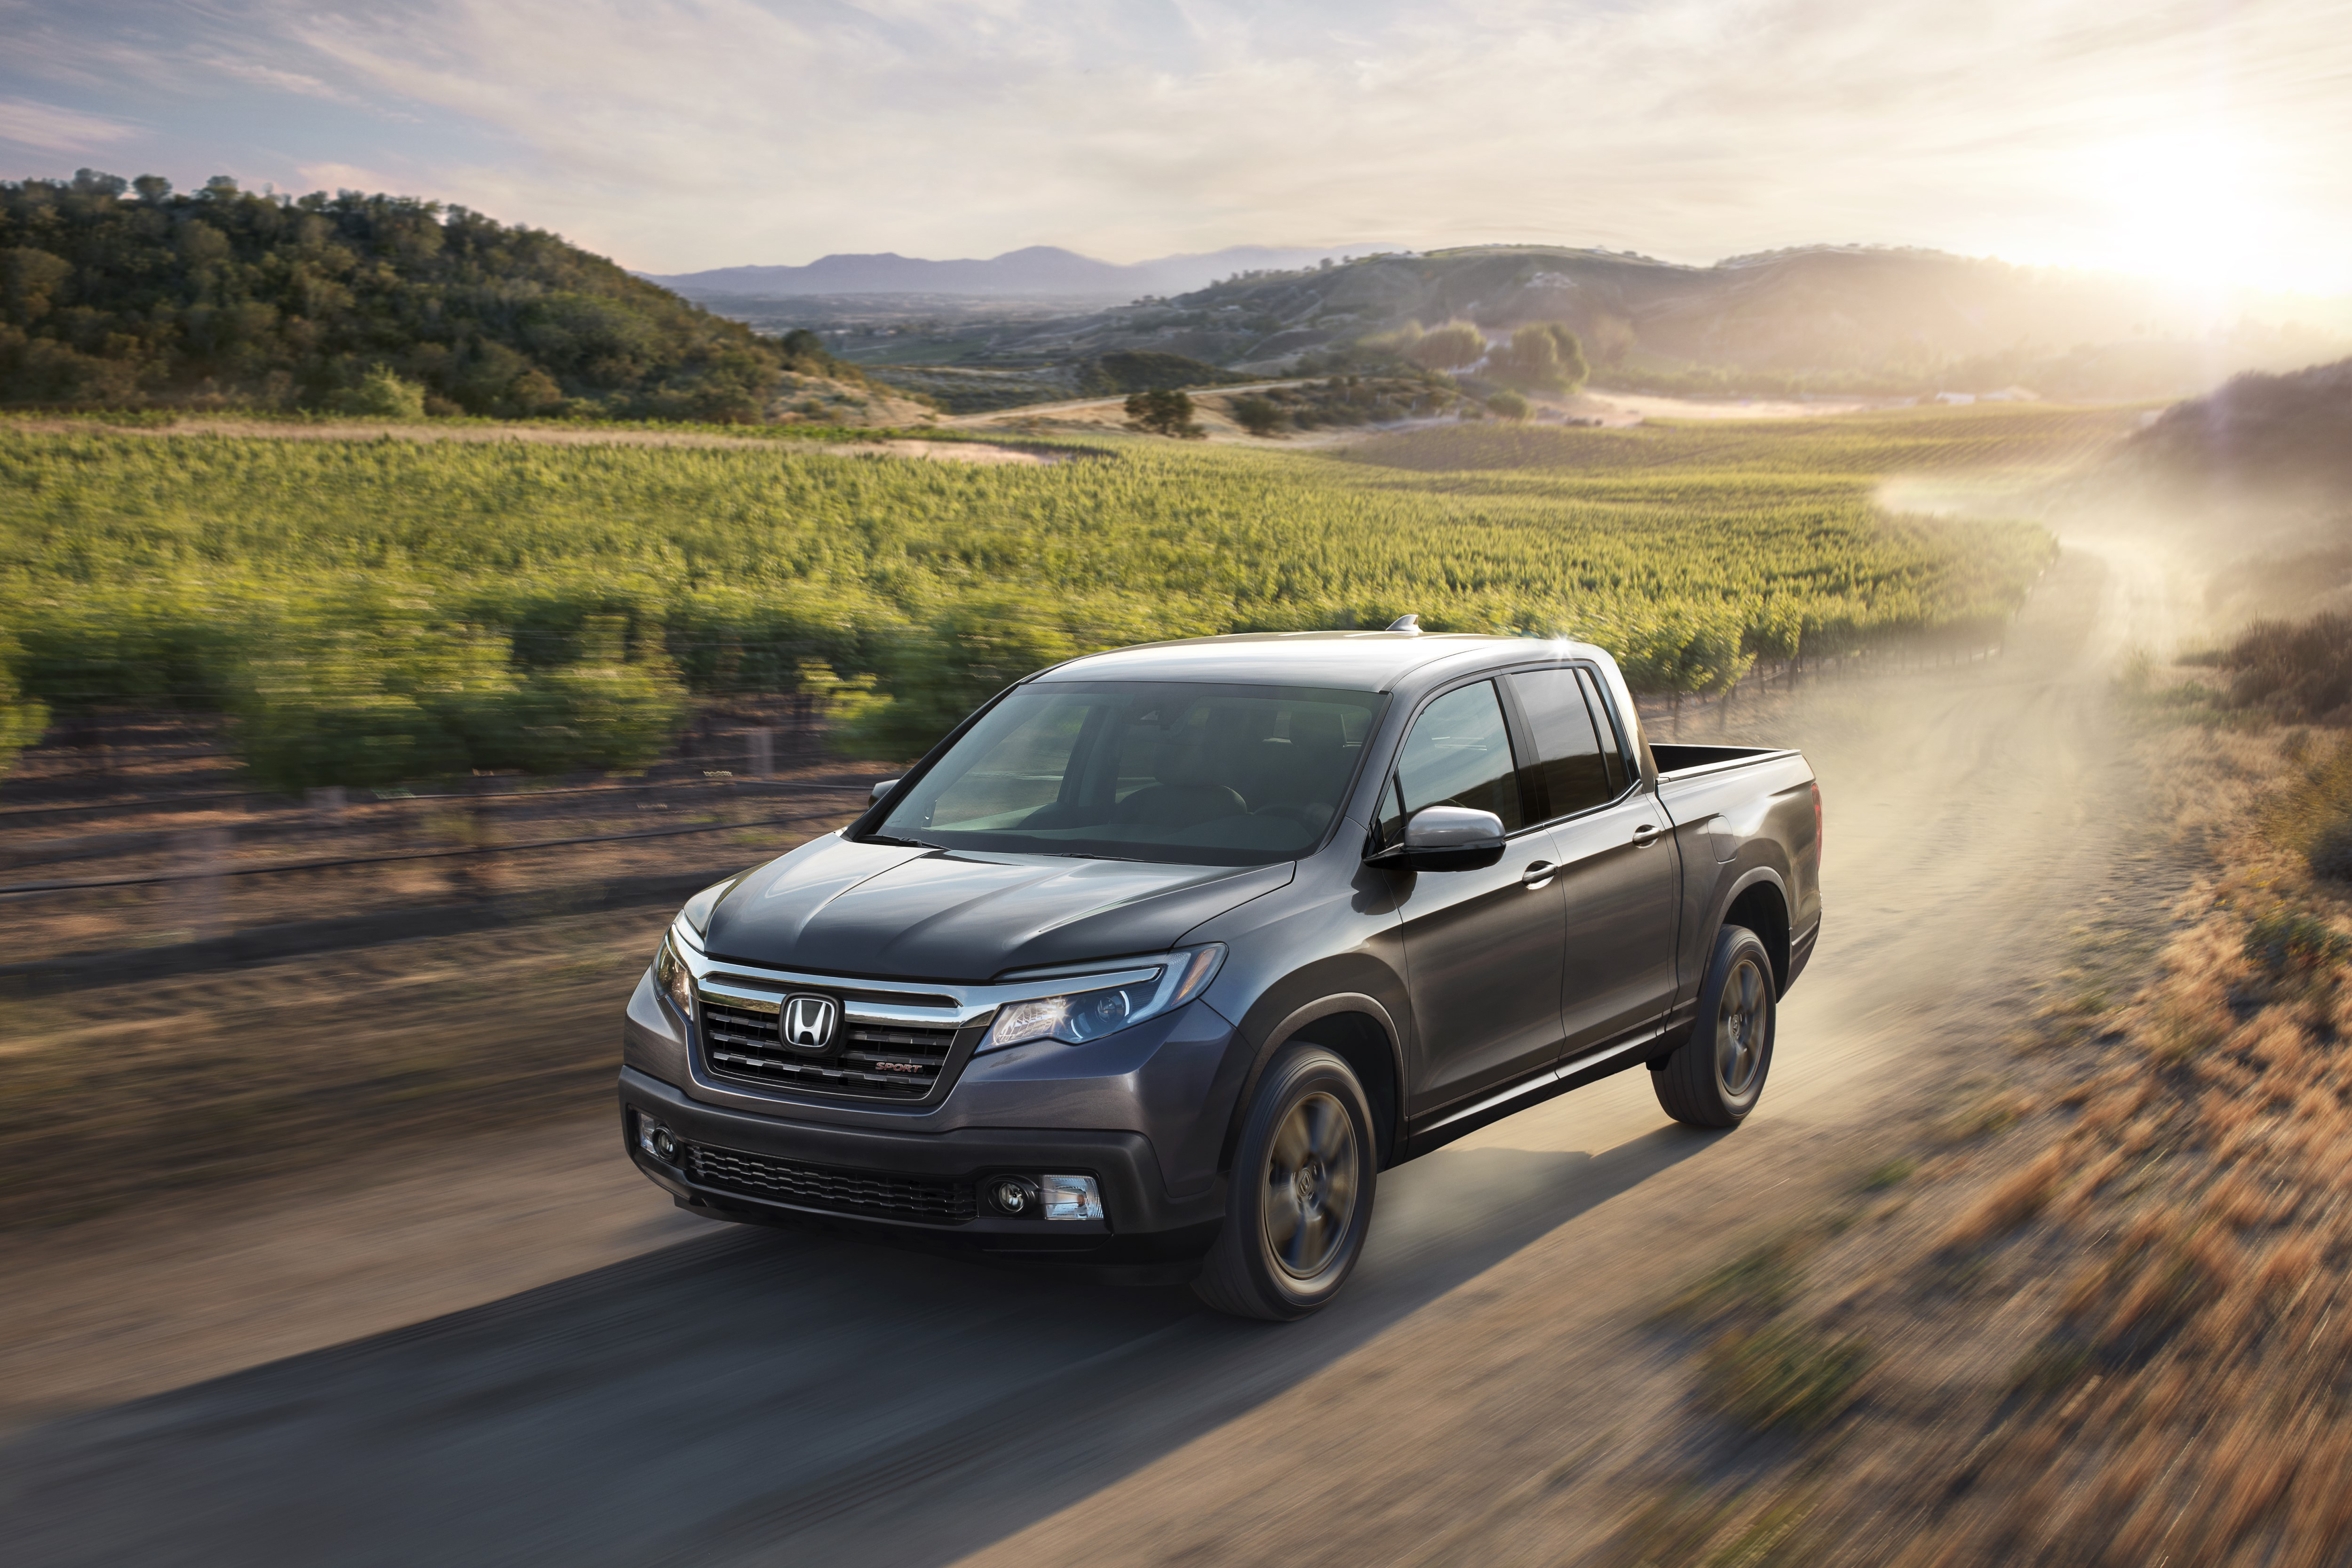 Used Honda Ridgeline available in Michigan City at